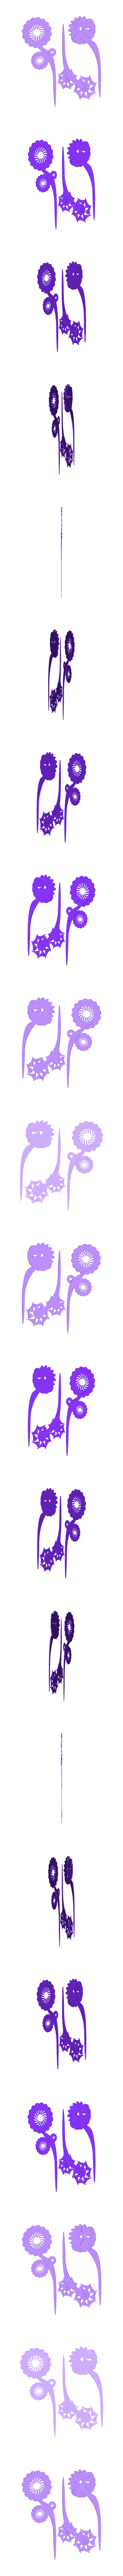 3_flowers.stl Download free STL file flowers and vase • 3D printing template, squiqui